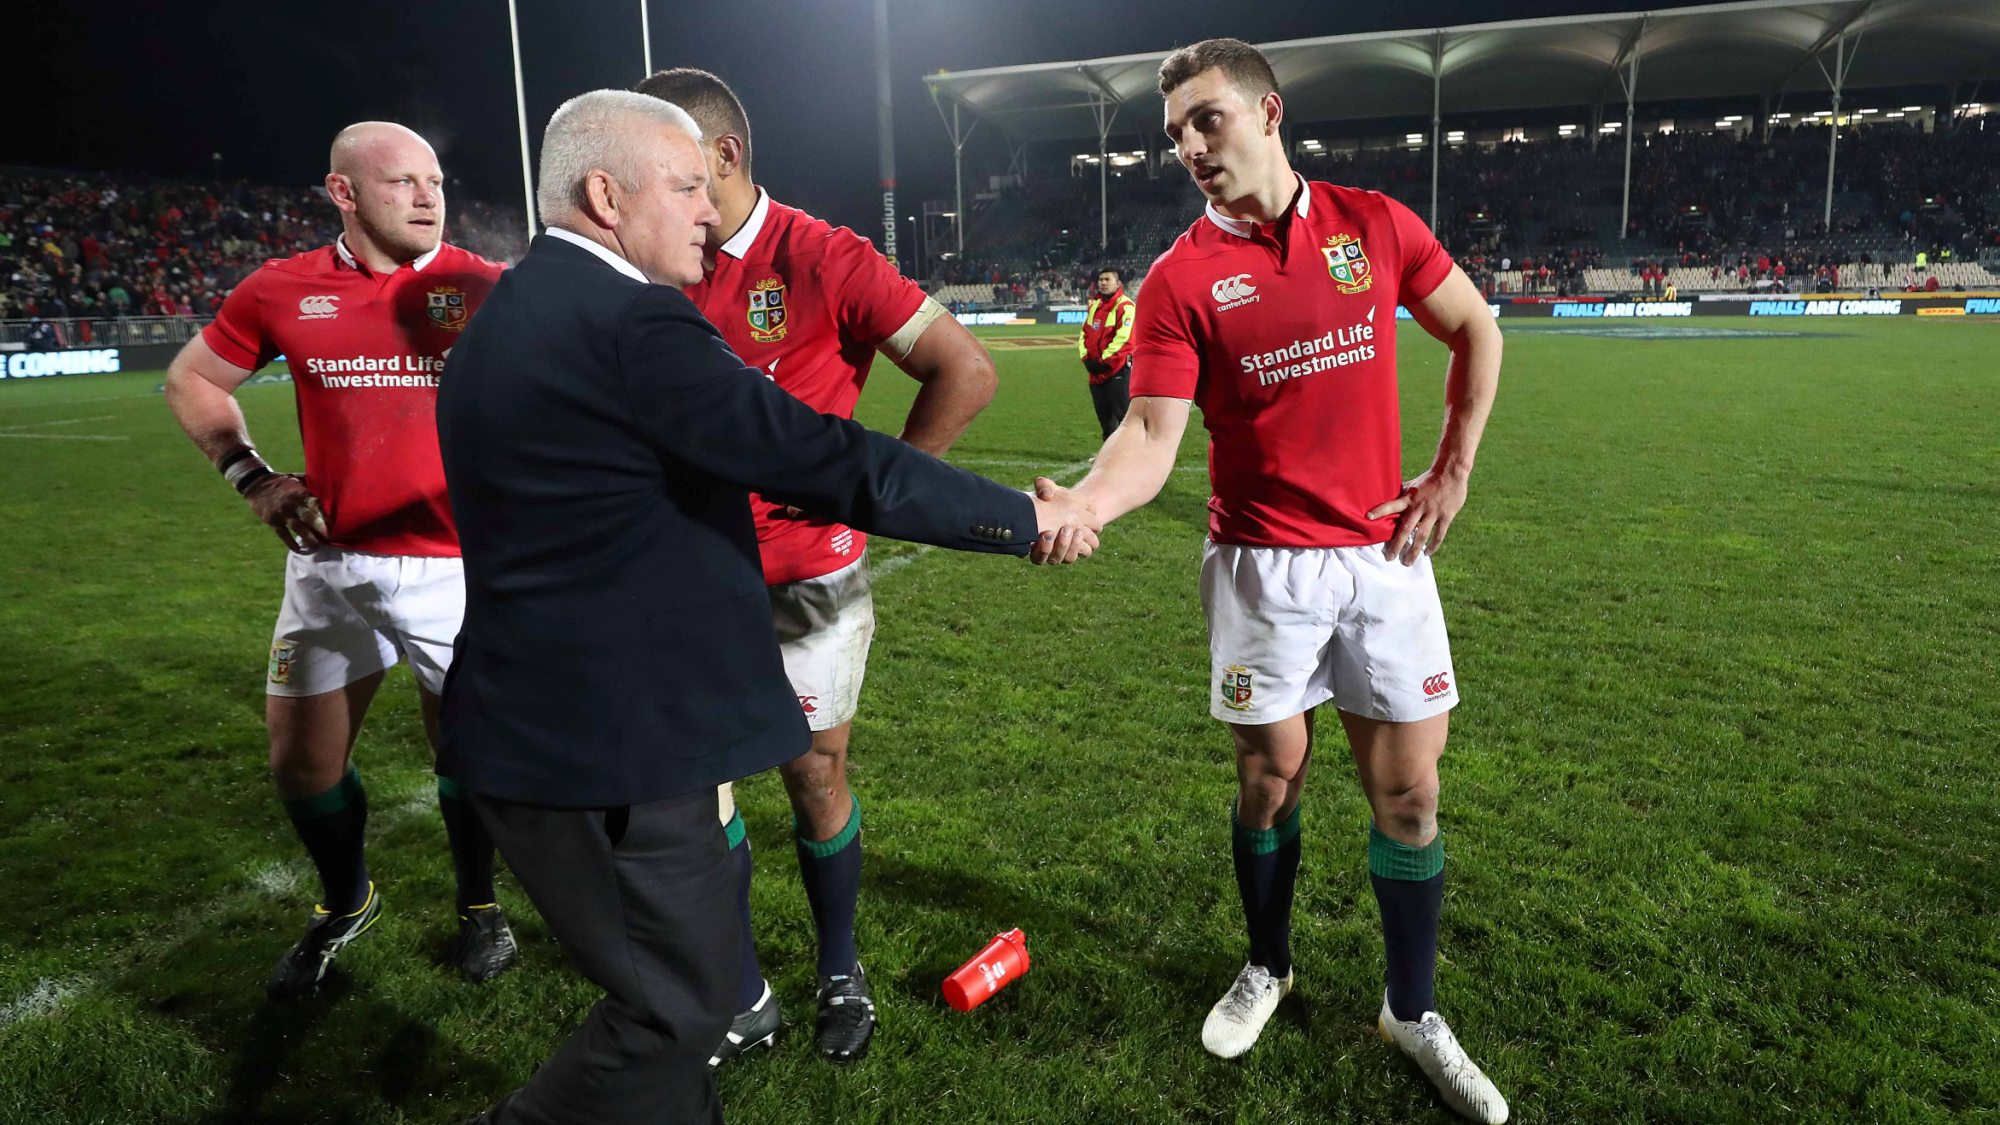 Wales and Scotland secure Summer Tour victories